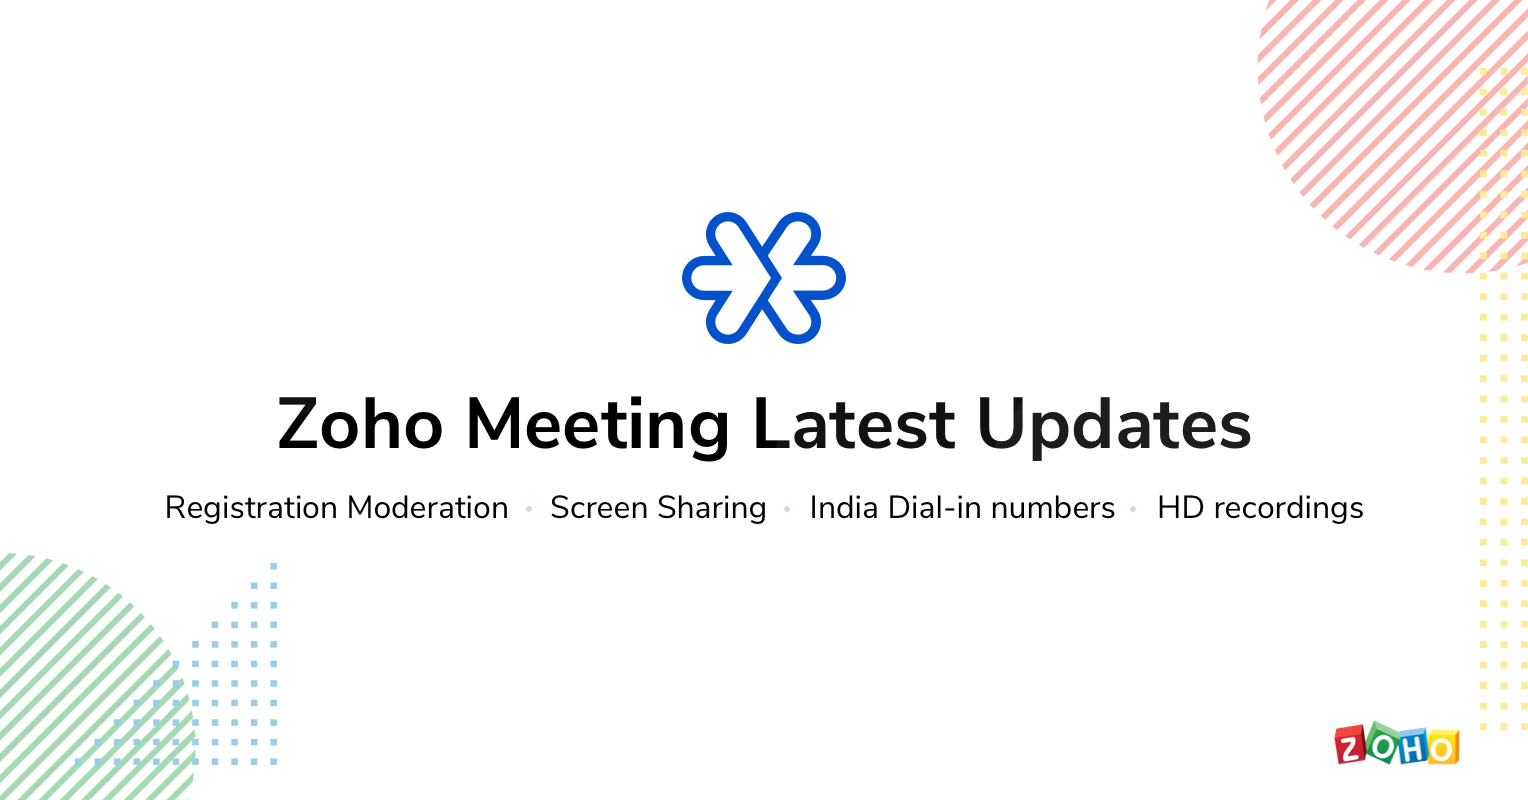 Zoho Meeting Latest Updates